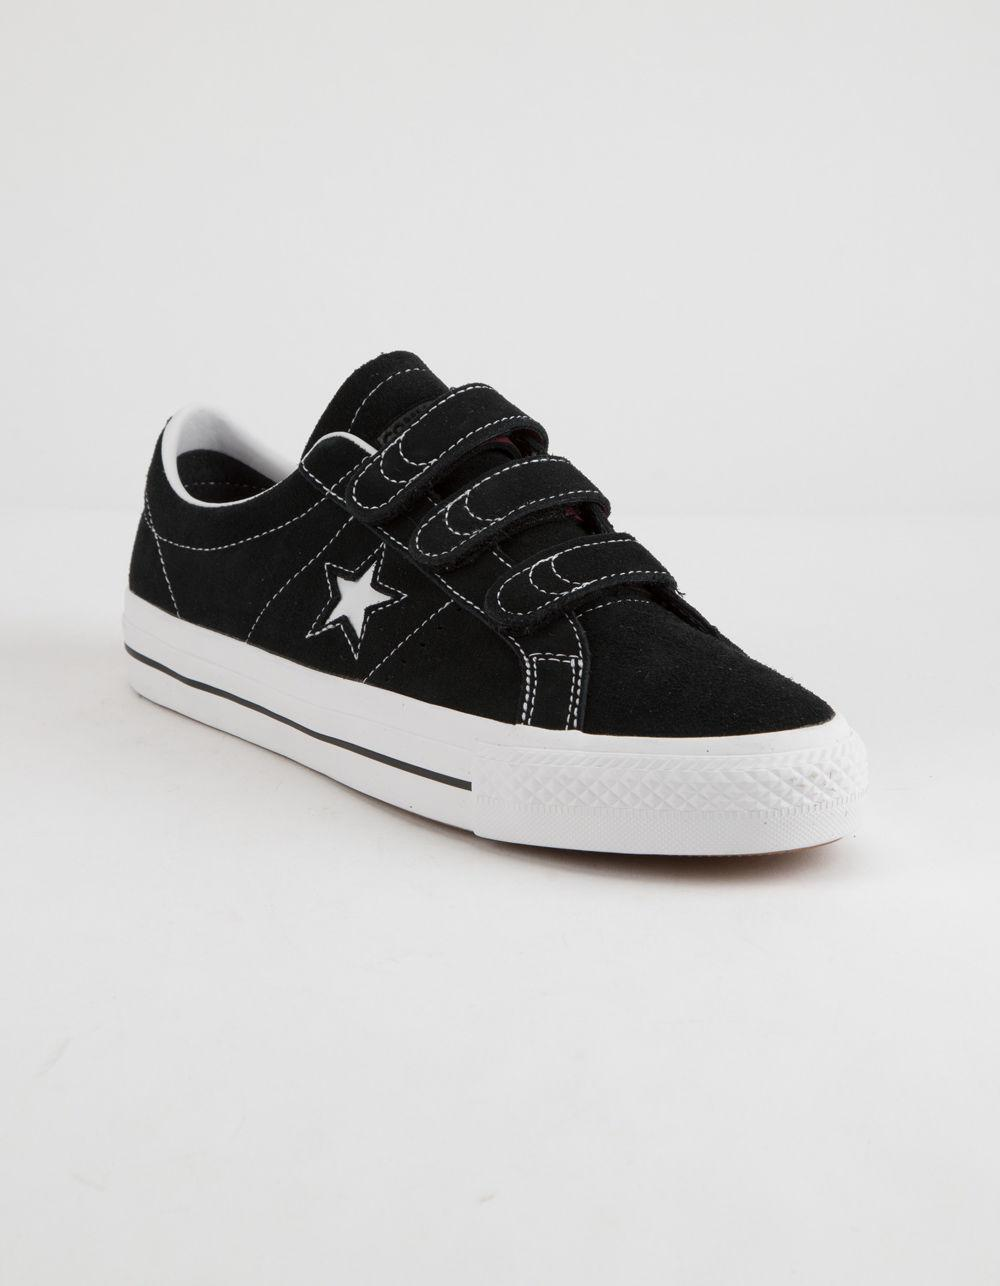 0873d49ee194 Converse - One Star Pro 3v Ox Black   White Shoes for Men - Lyst. View  fullscreen